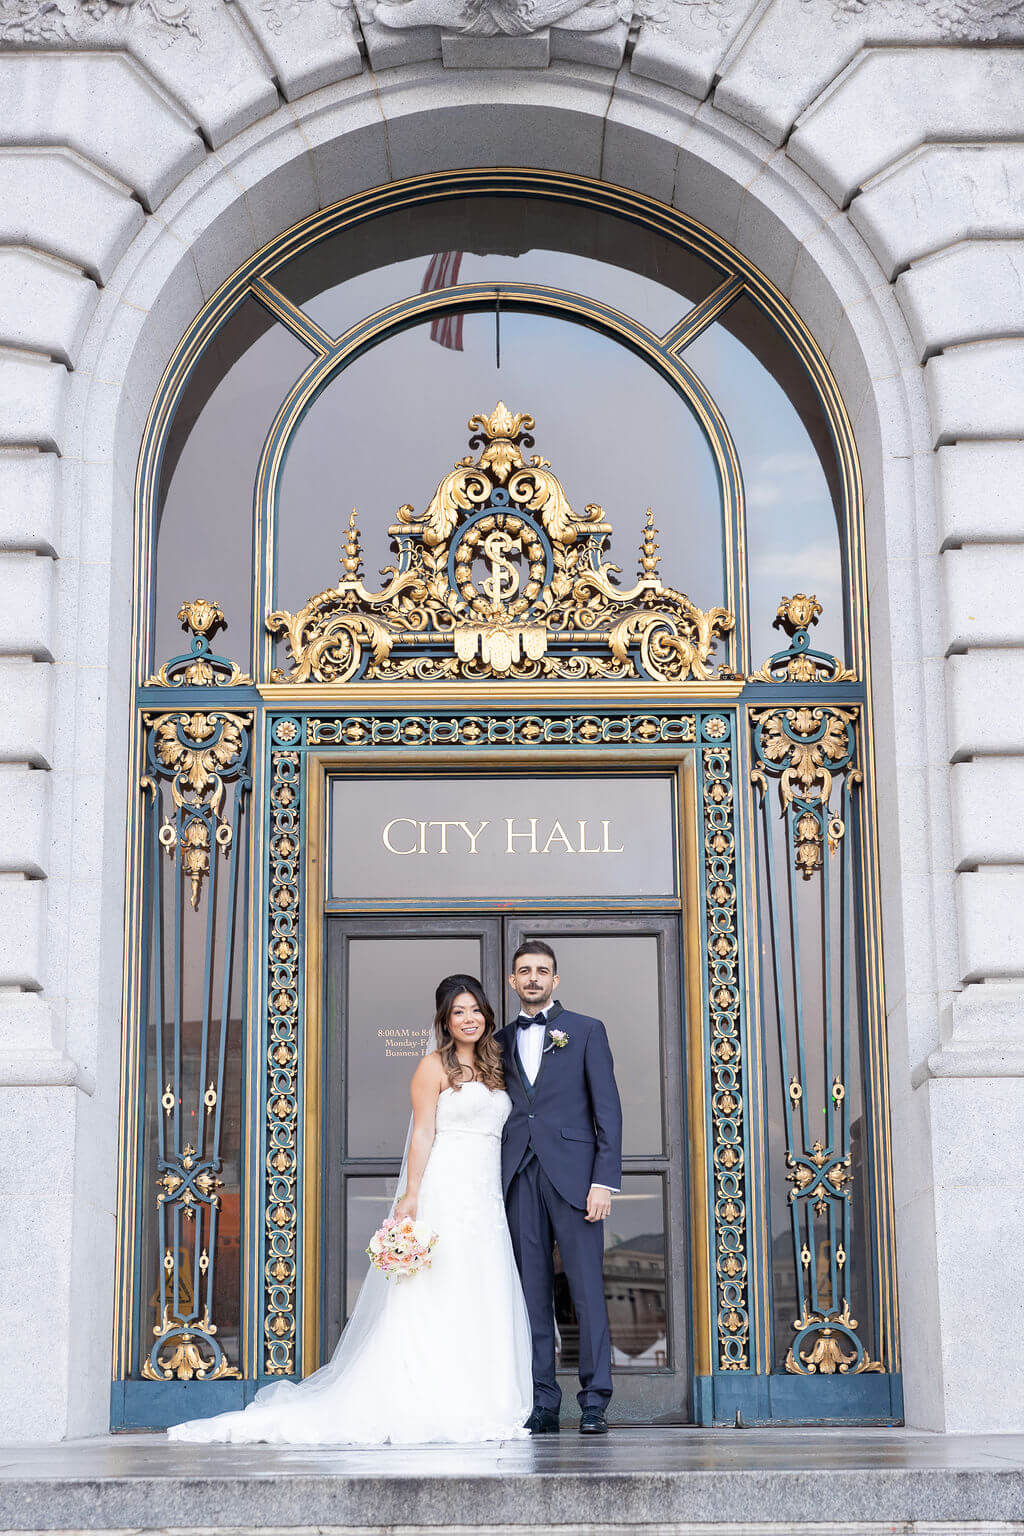 Couple just married stands in front of San Francisco City Hall entrance door